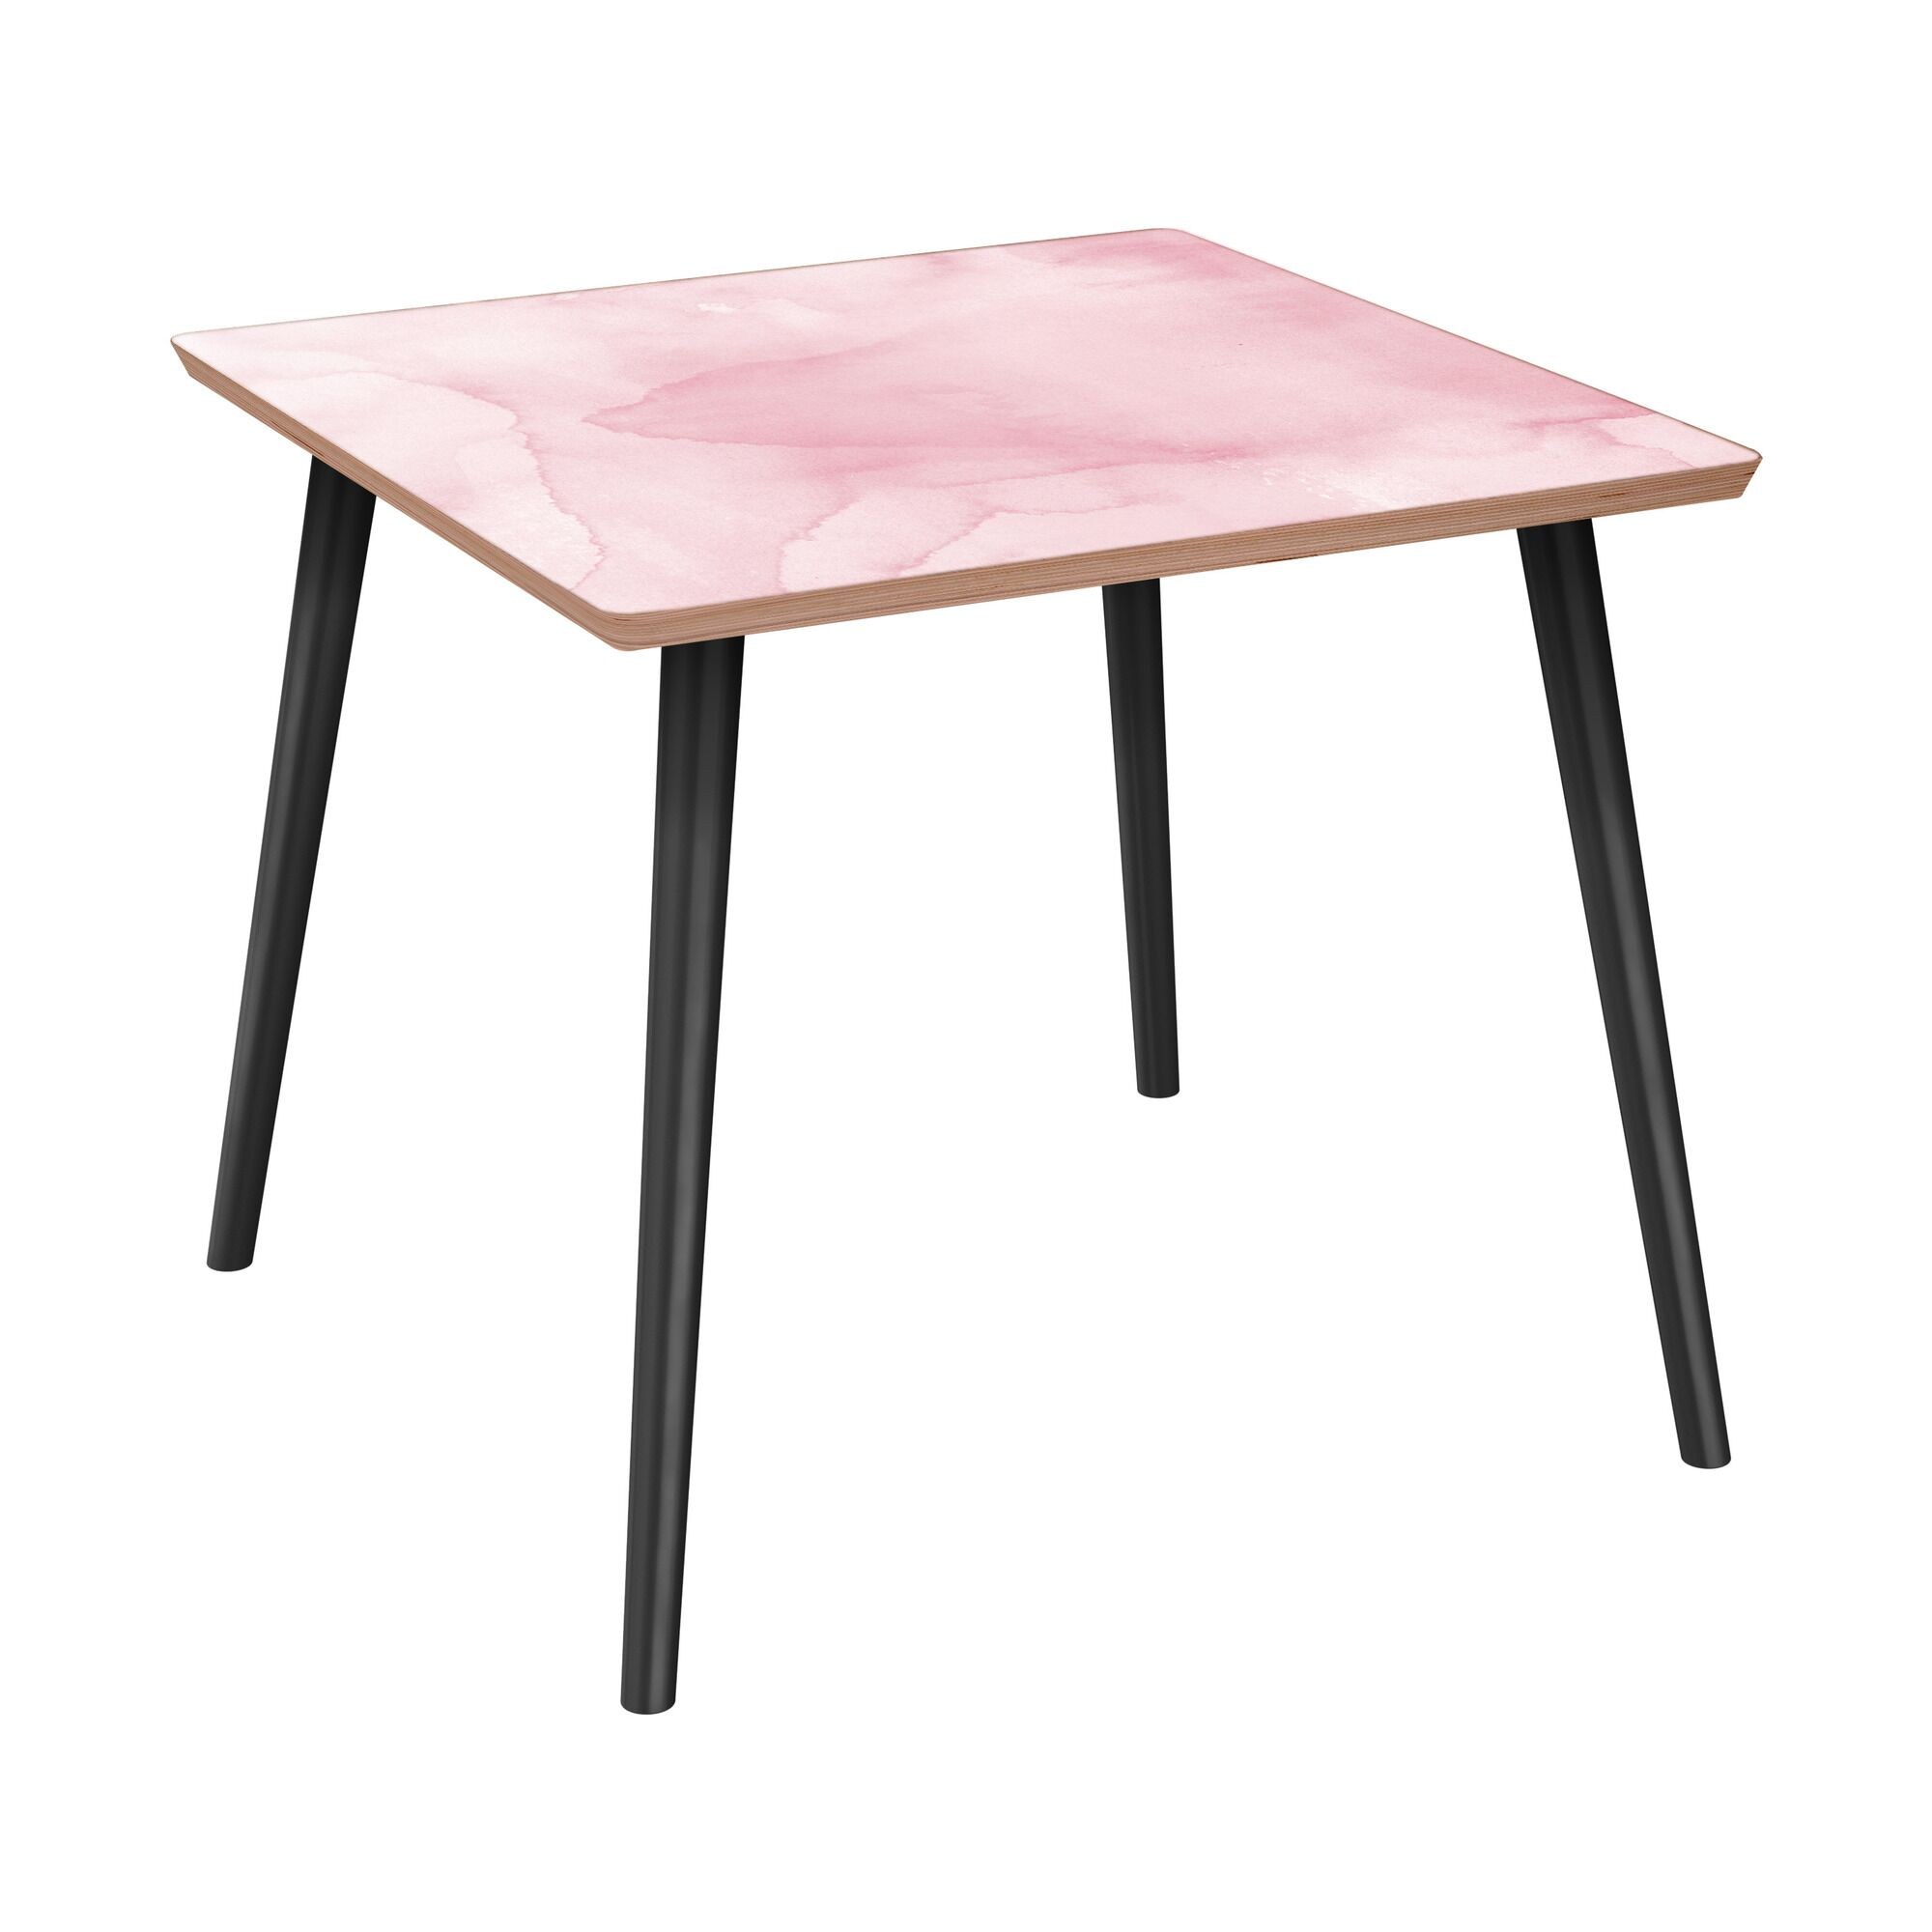 Ratzlaff End Table Table Base Color: Black, Table Top Boarder Color: Walnut, Table Top Color: Pink